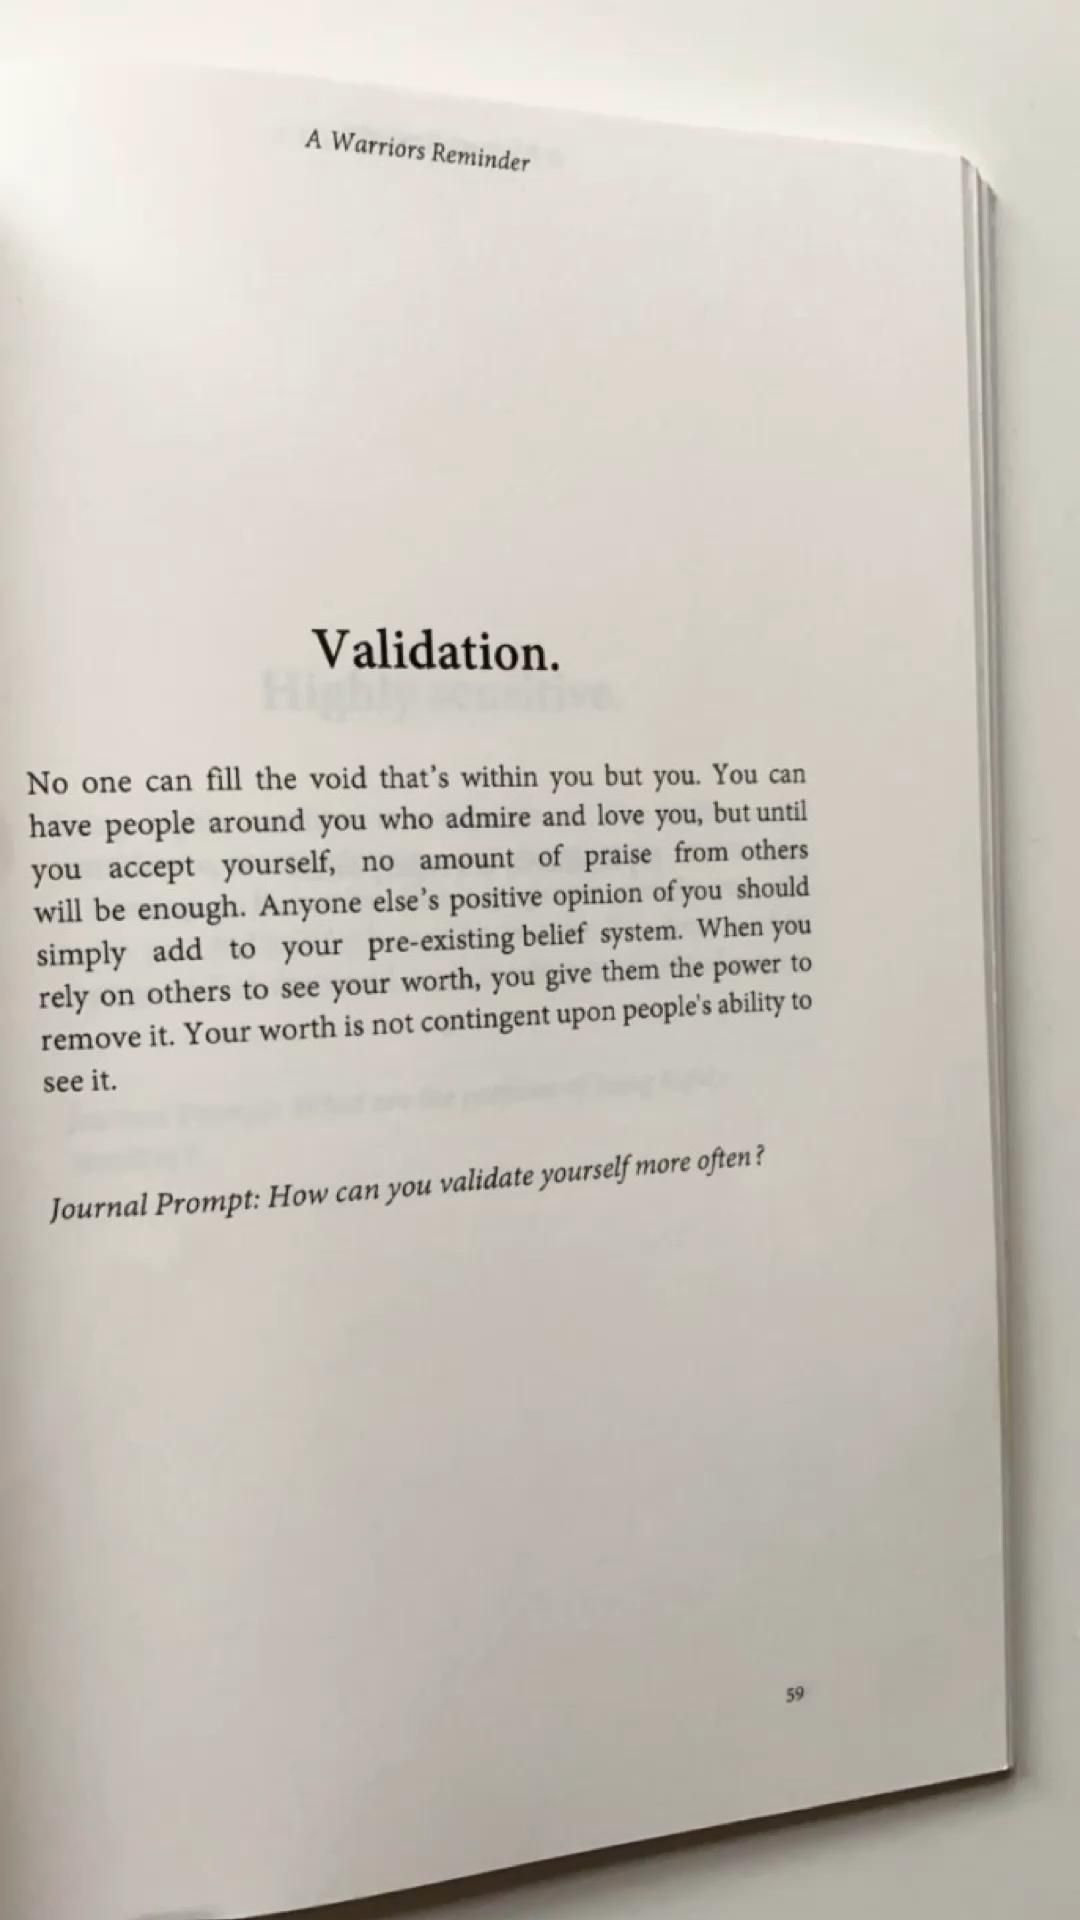 Validation - Extract from my book 'A Warriors Reminder' ⚡️